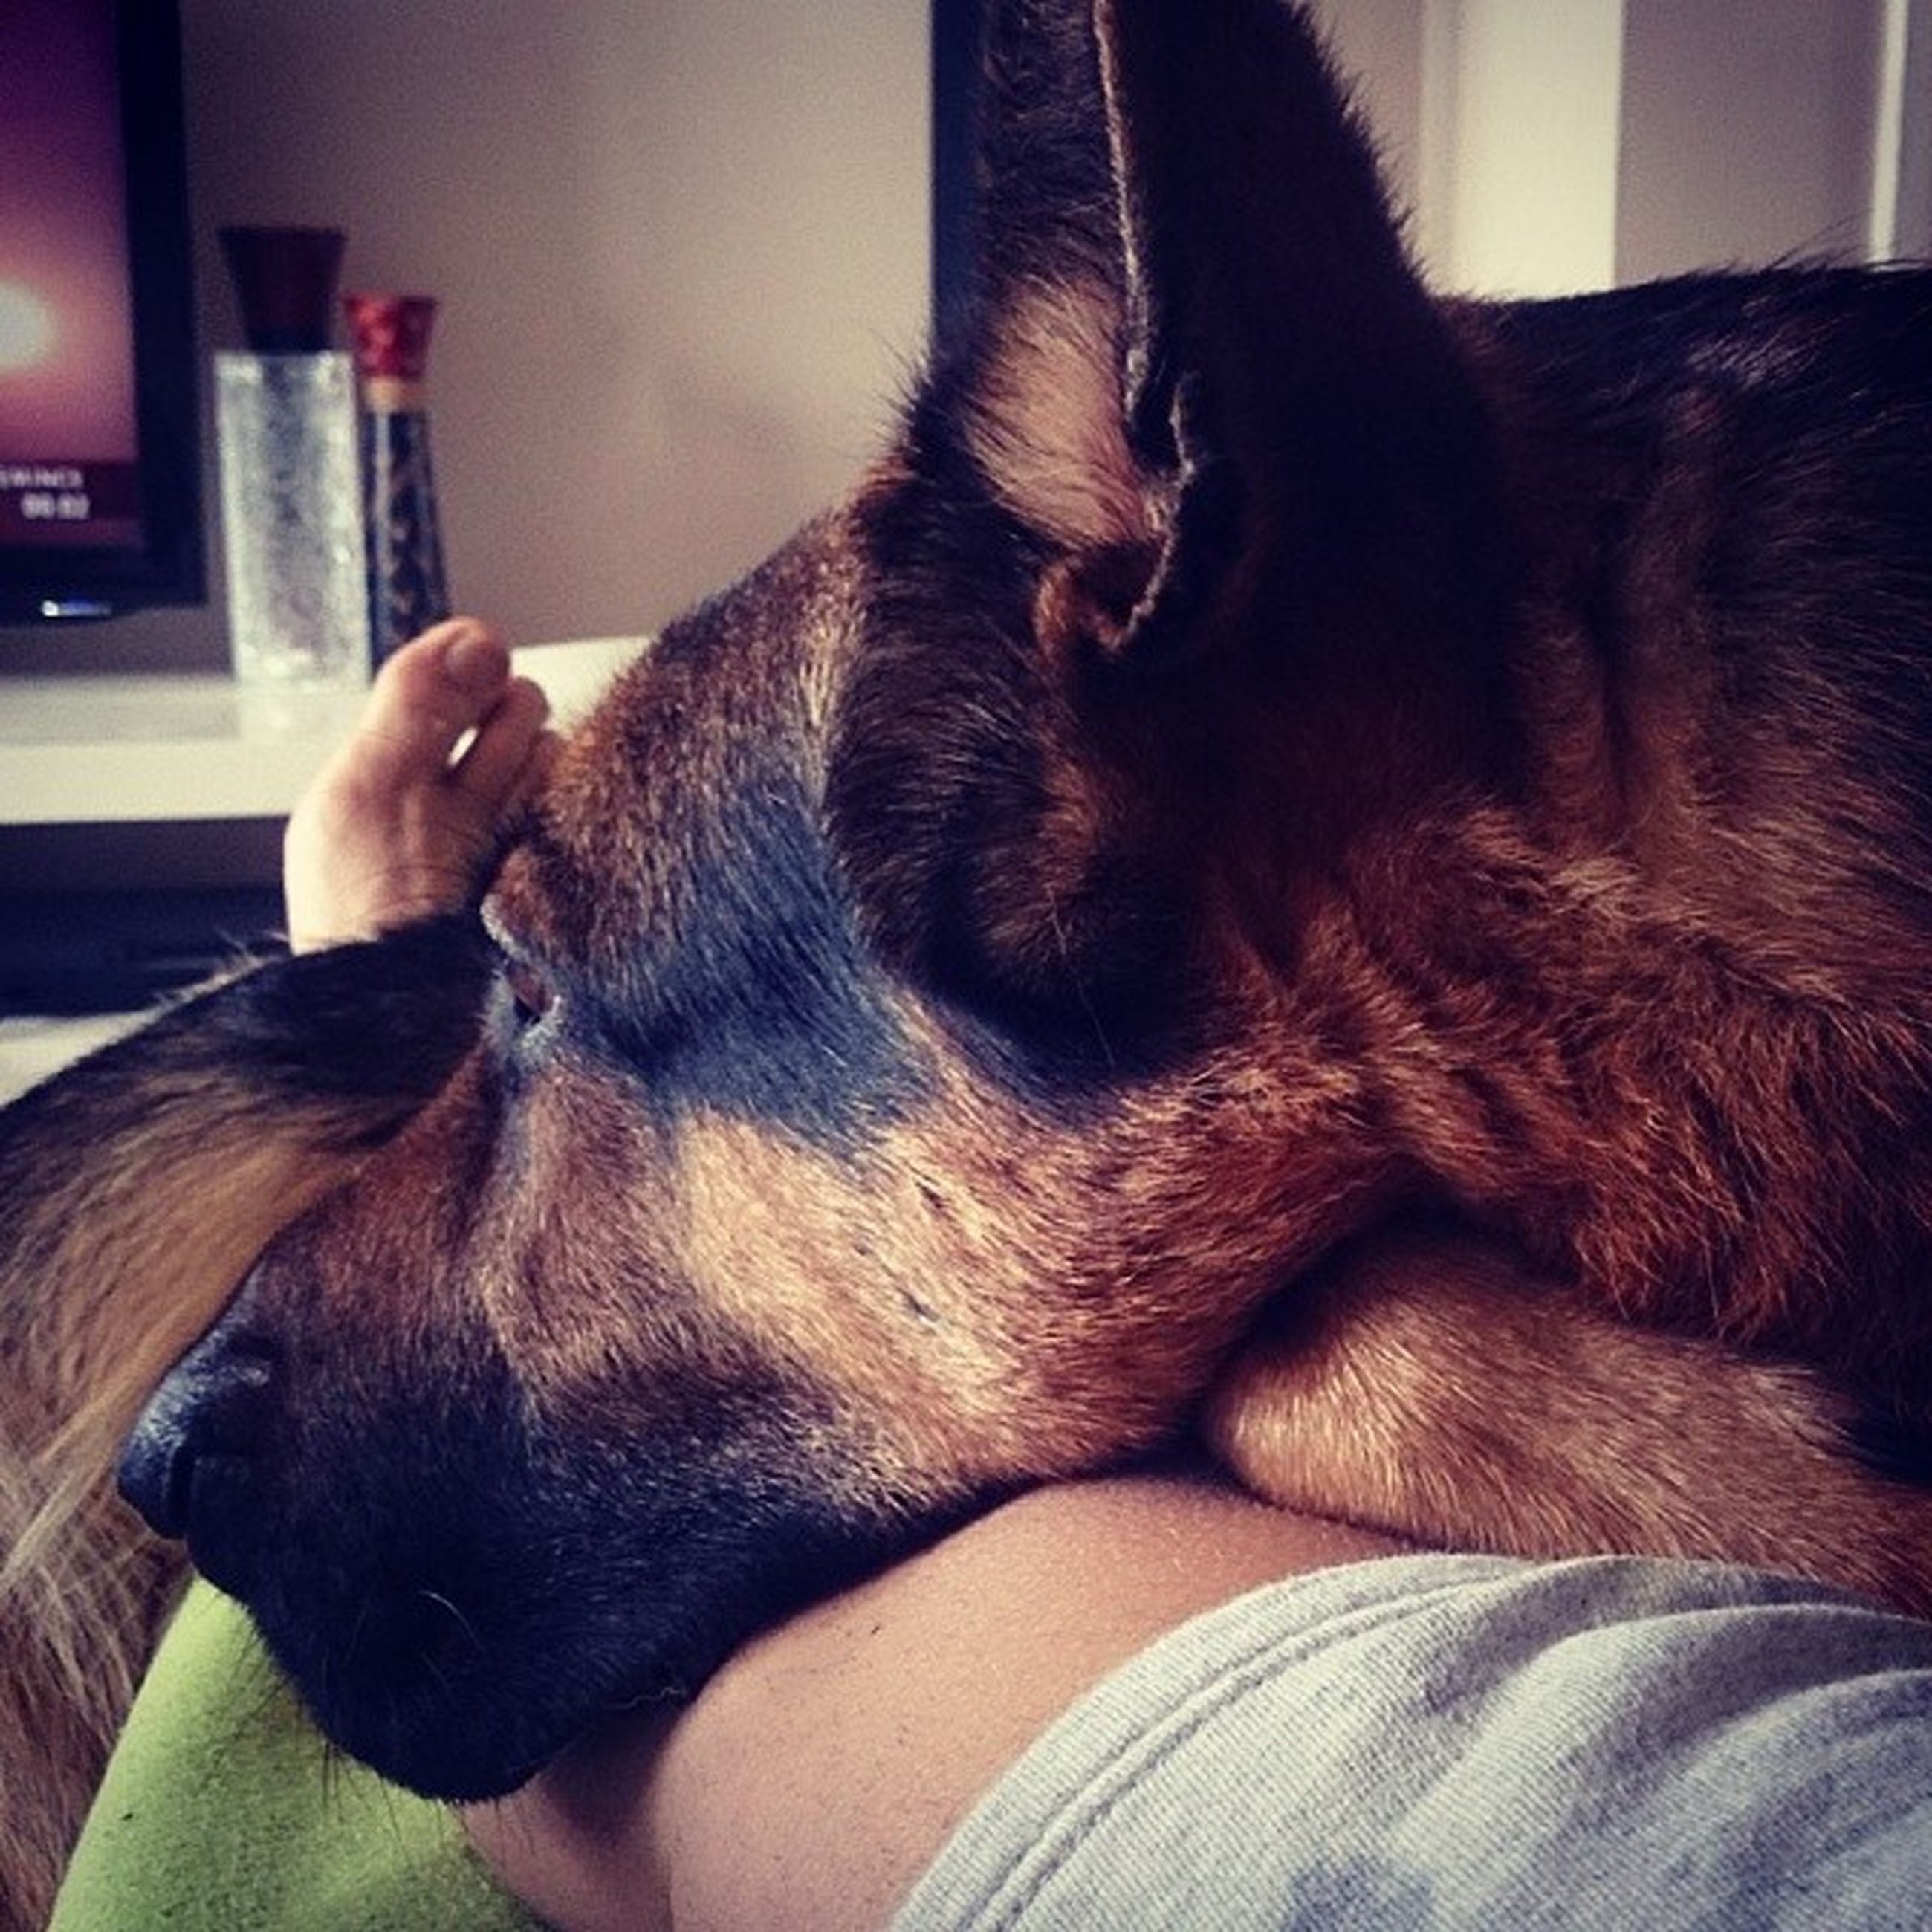 domestic animals, animal themes, mammal, pets, one animal, indoors, dog, relaxation, animal head, sleeping, home interior, close-up, resting, animal body part, lying down, part of, vertebrate, eyes closed, zoology, bed